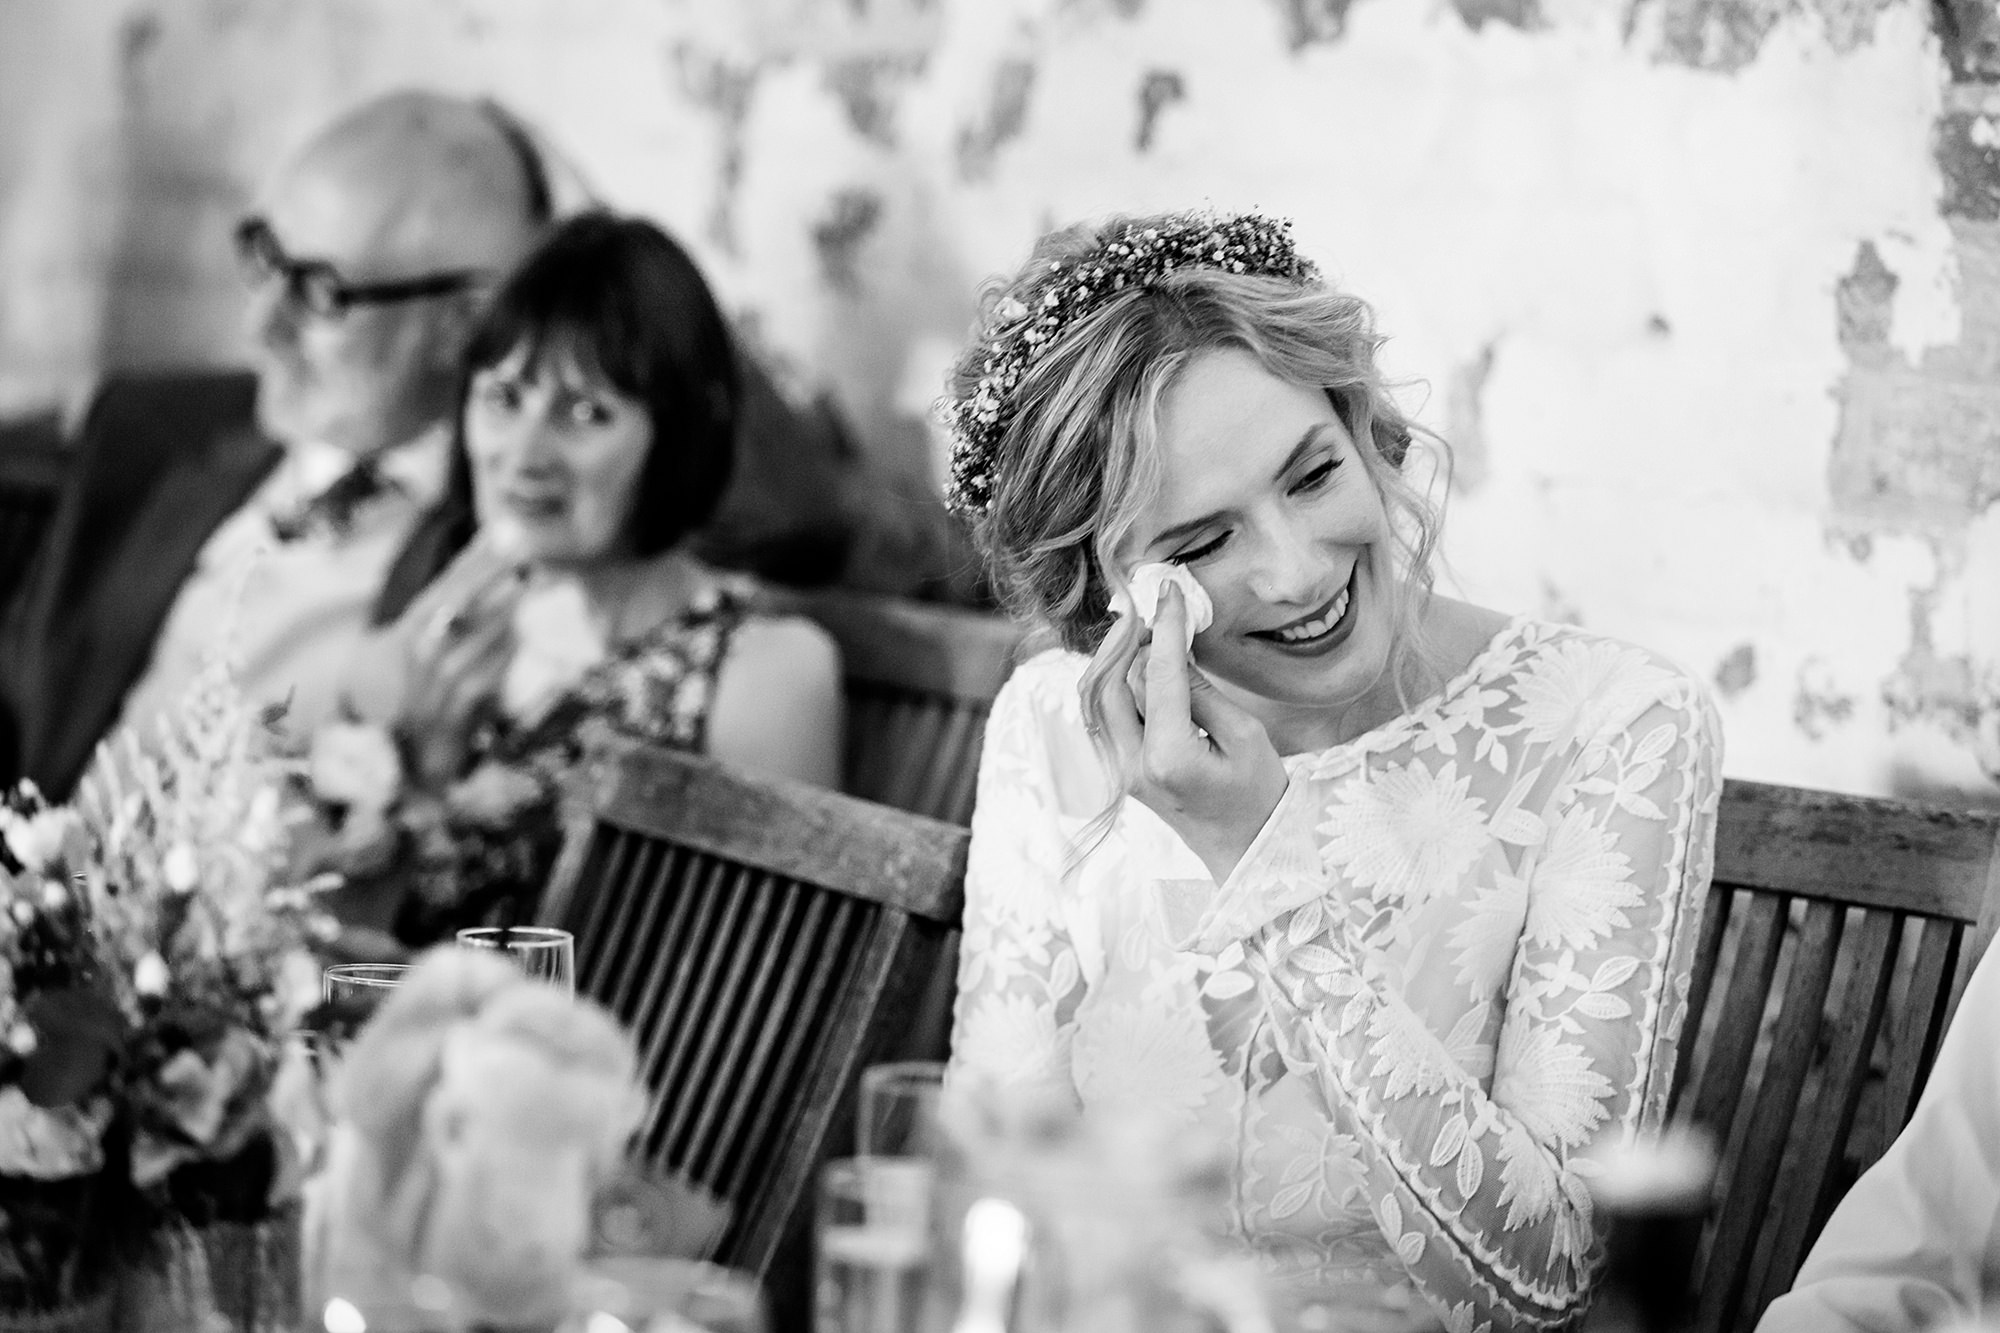 Isis Farmhouse Oxford Wedding bride reacts with a tear to groom's speech